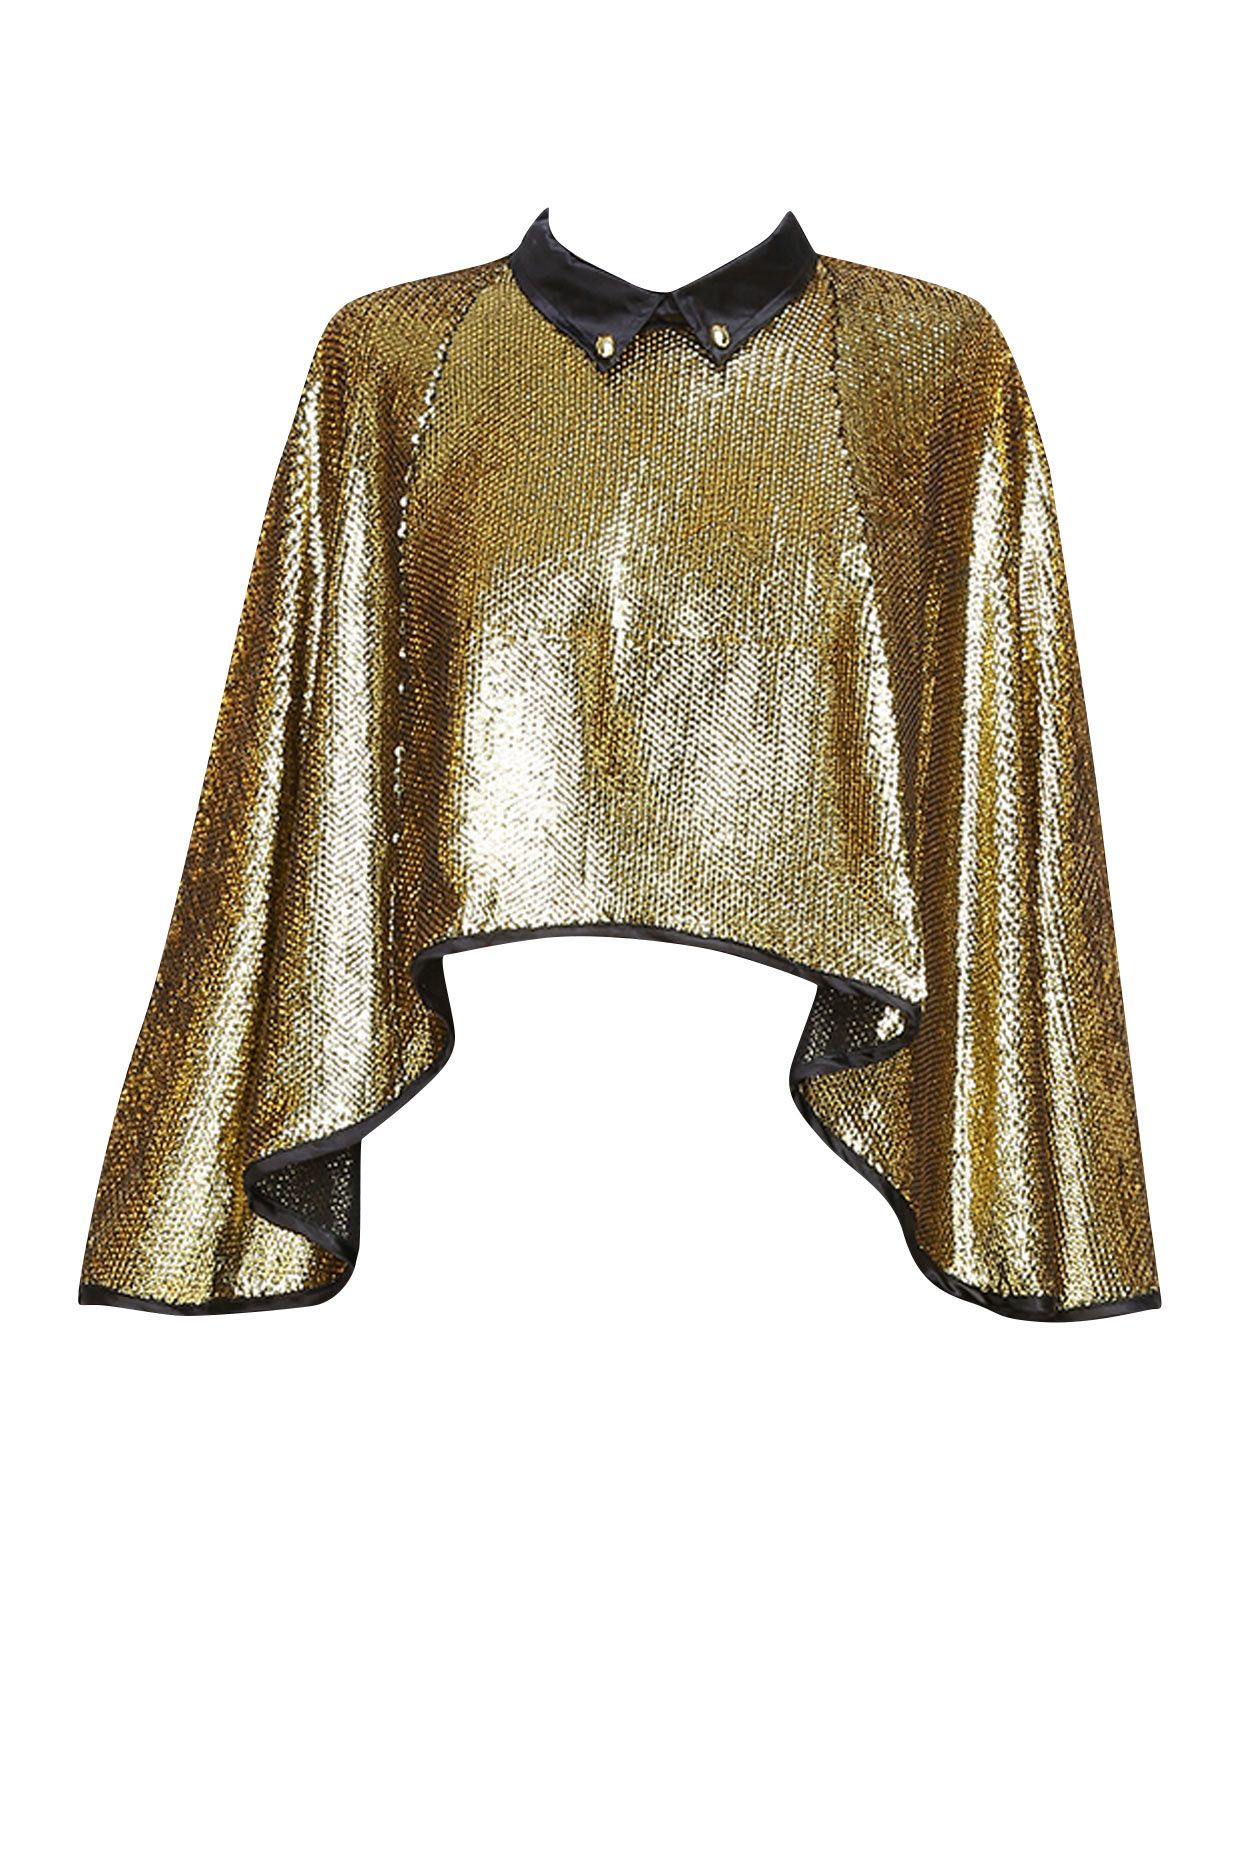 Bold gold sequin cape available only at Pernia's Pop Up Shop.